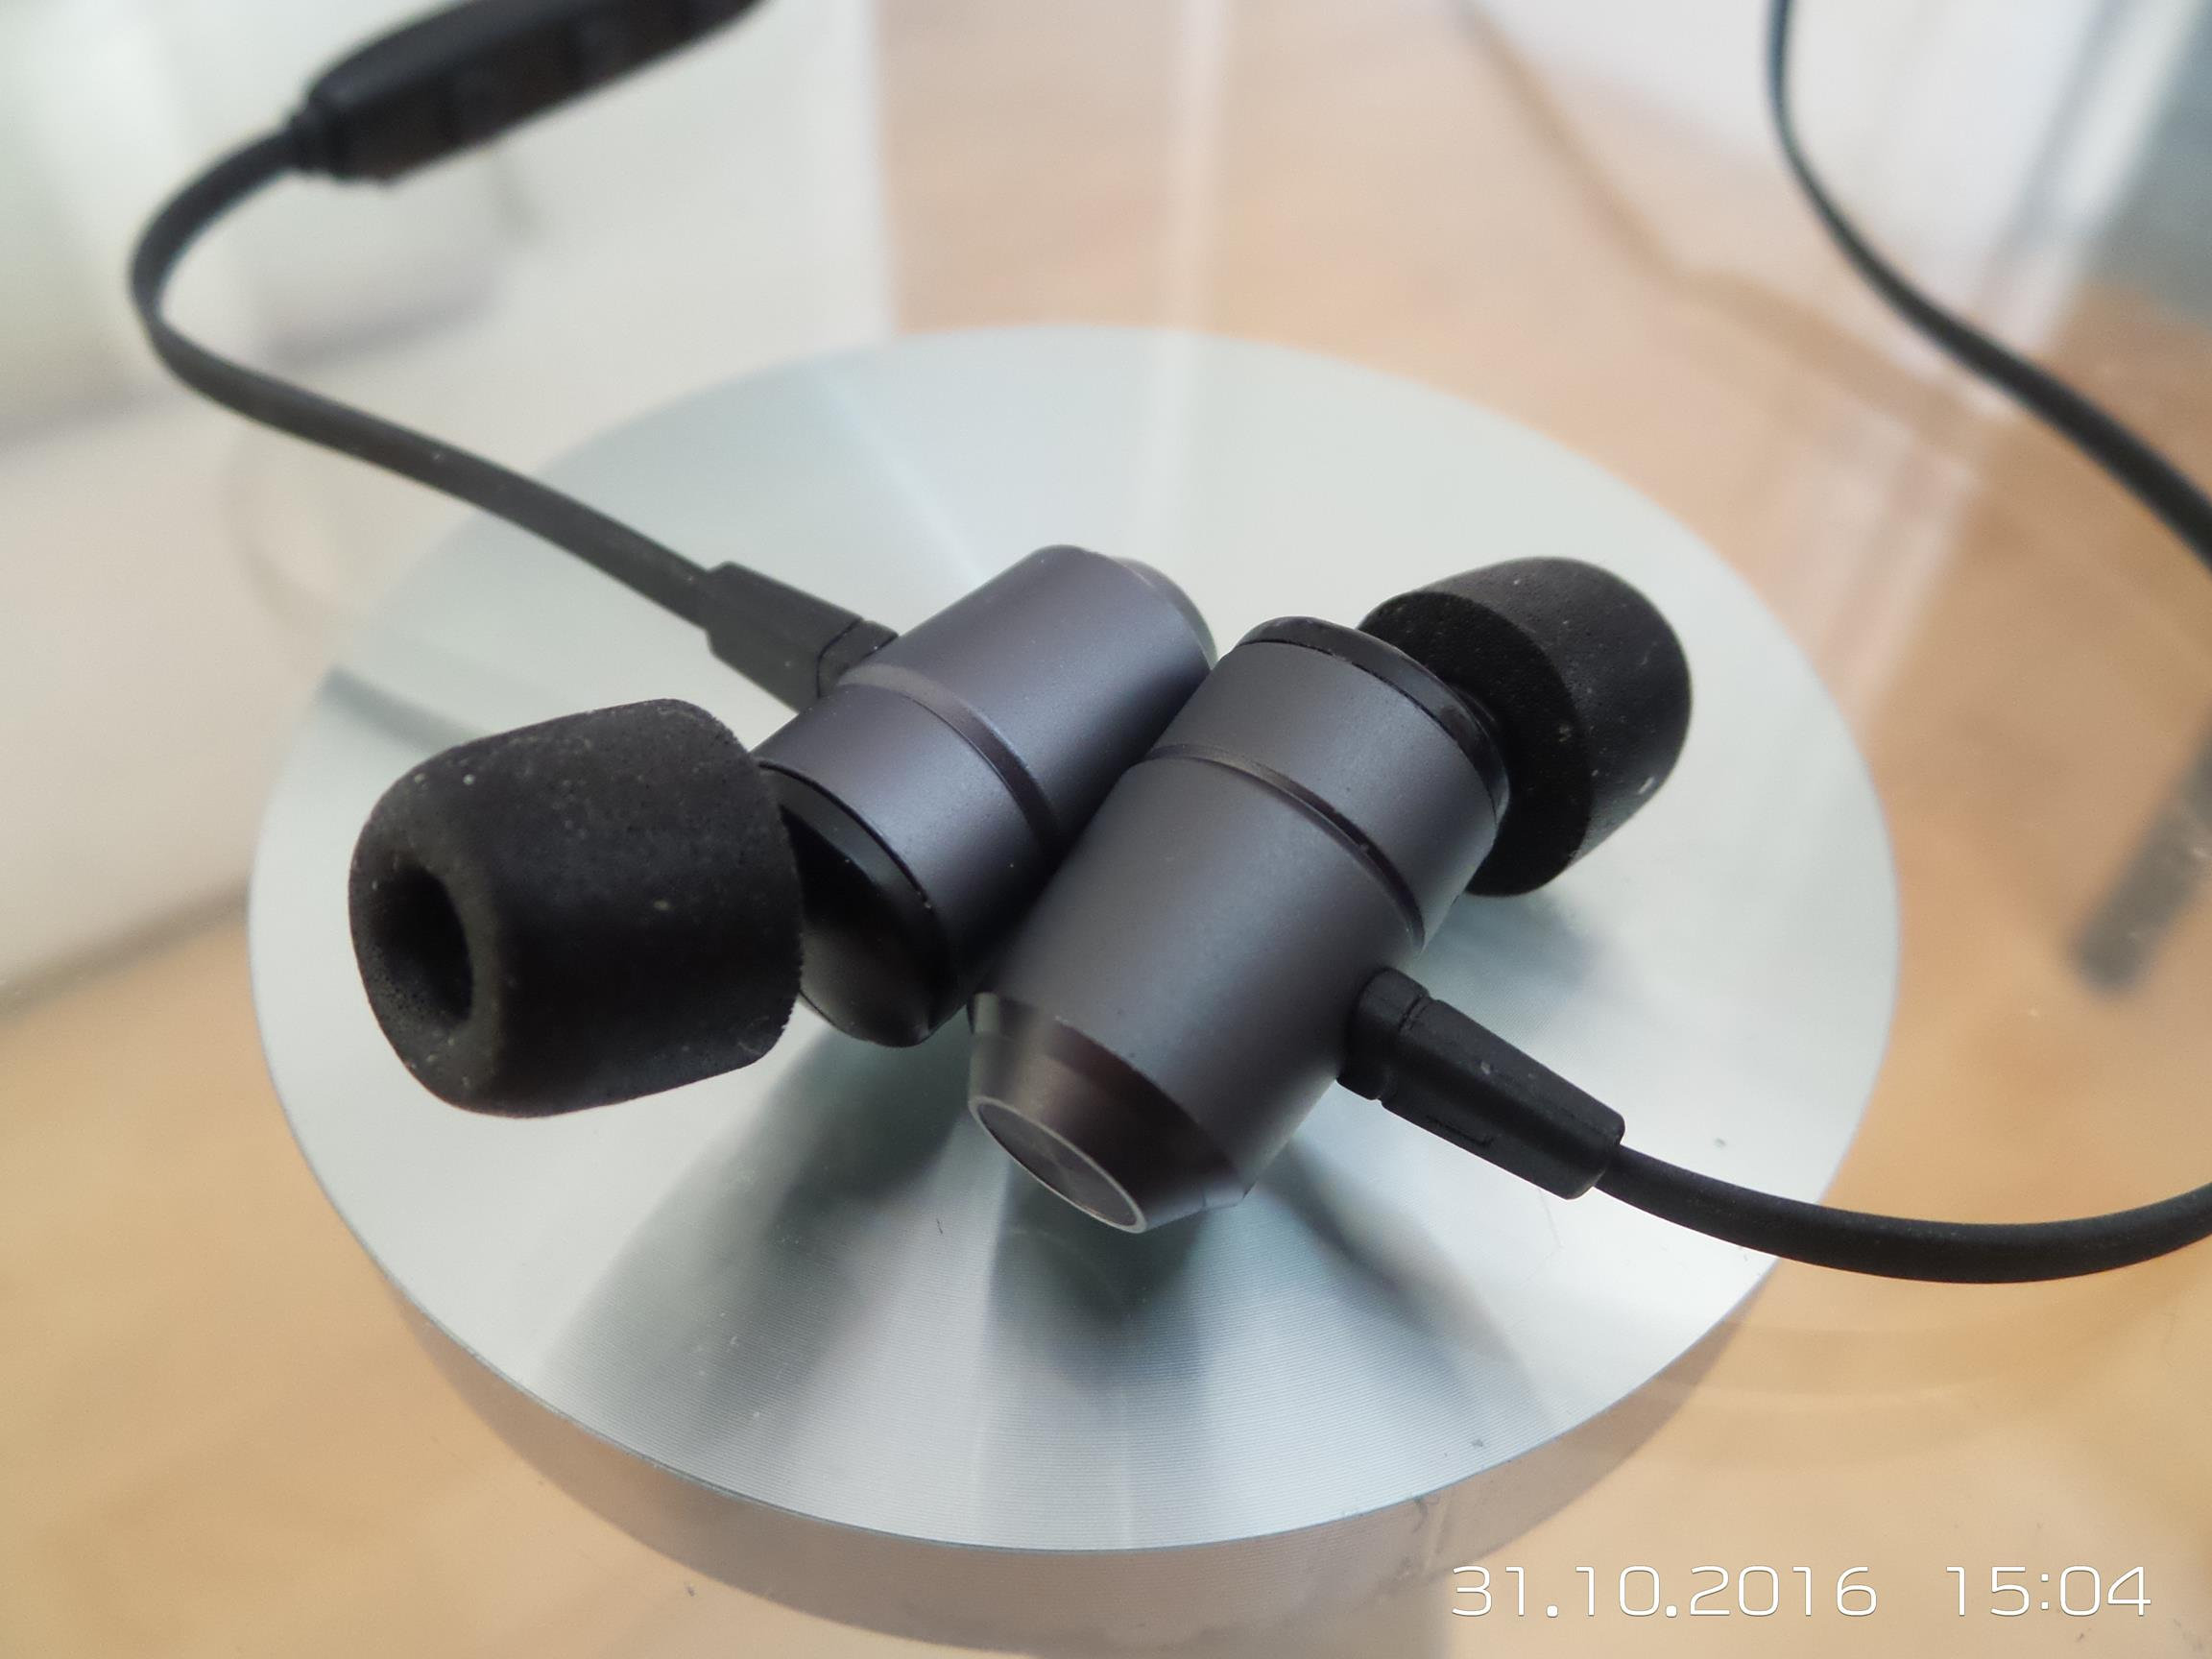 J&L Real J&L-103 Bluetooth Earphone Quick Review